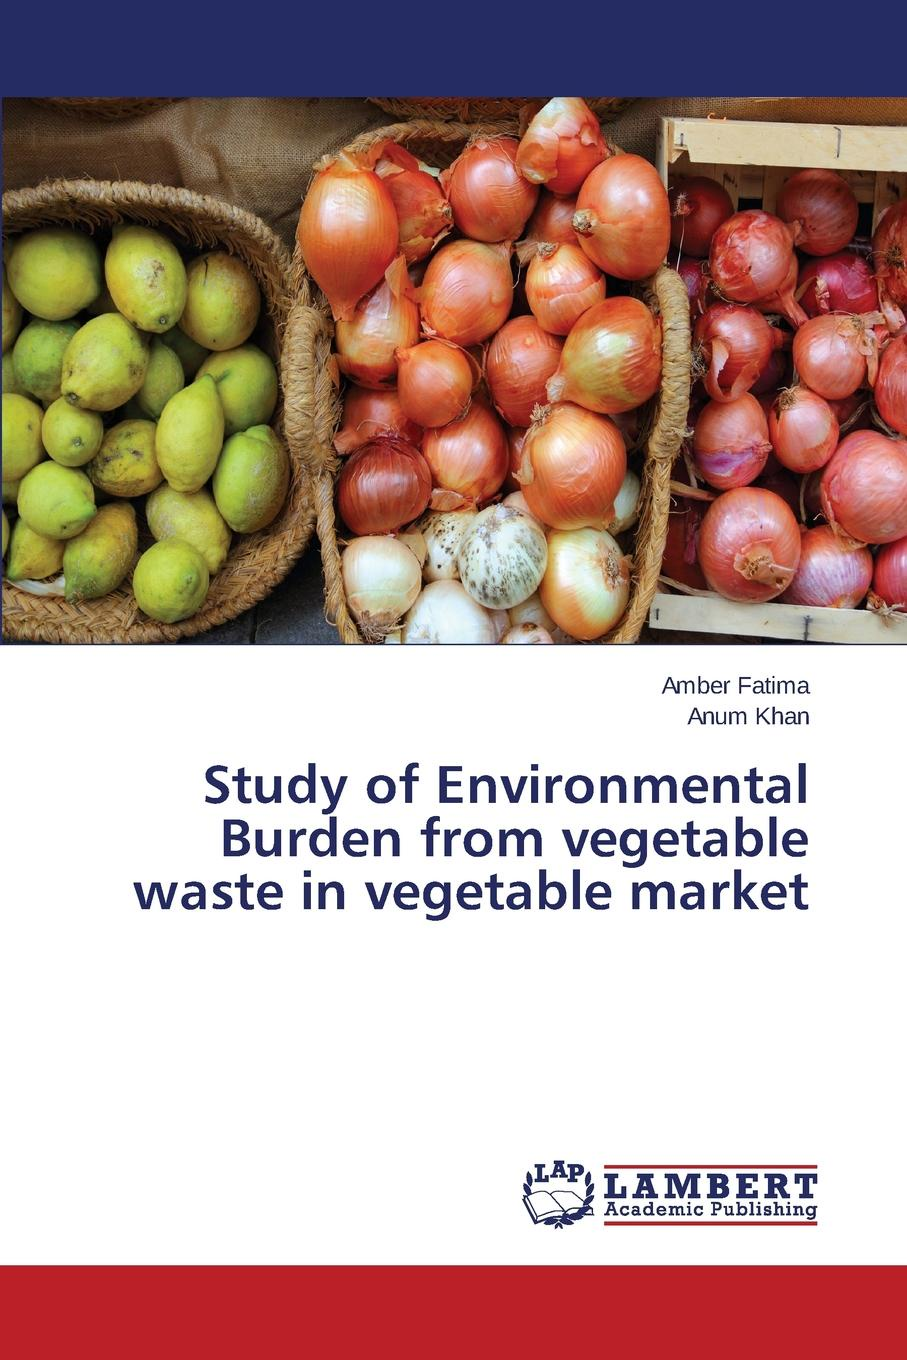 Fatima Amber, Khan Anum Study of Environmental Burden from vegetable waste in vegetable market teemzone wholesale